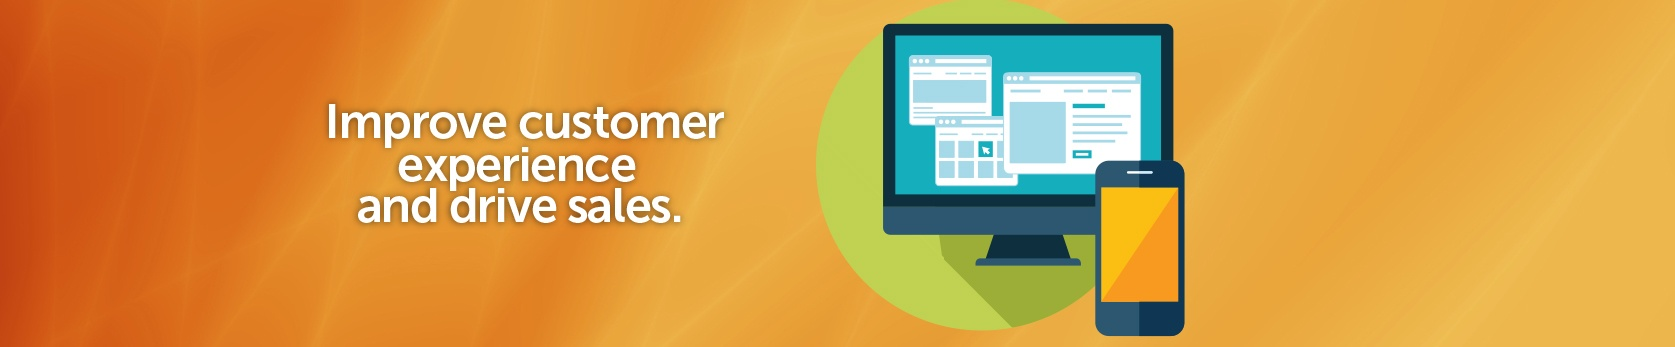 Improve customer experience and drive sales.